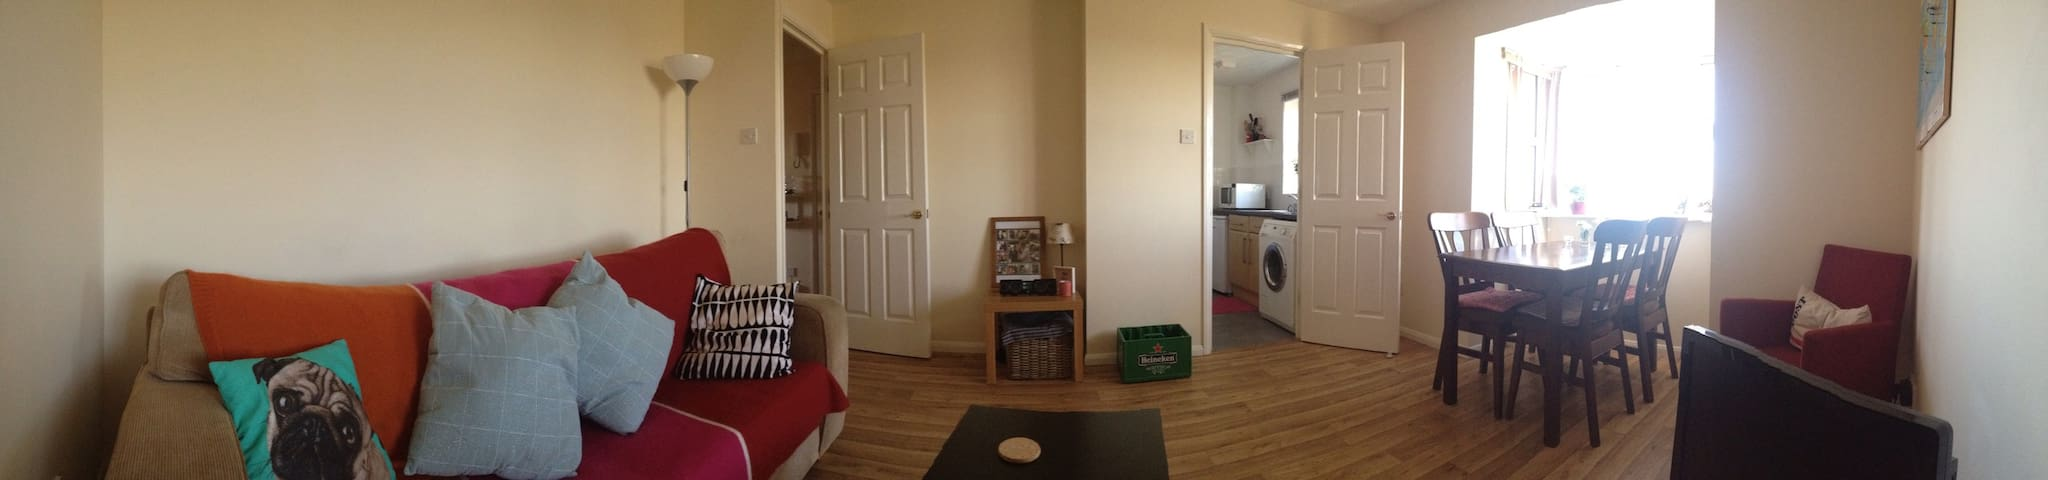 Spacious flat in Biggleswade - Biggleswade - Wohnung